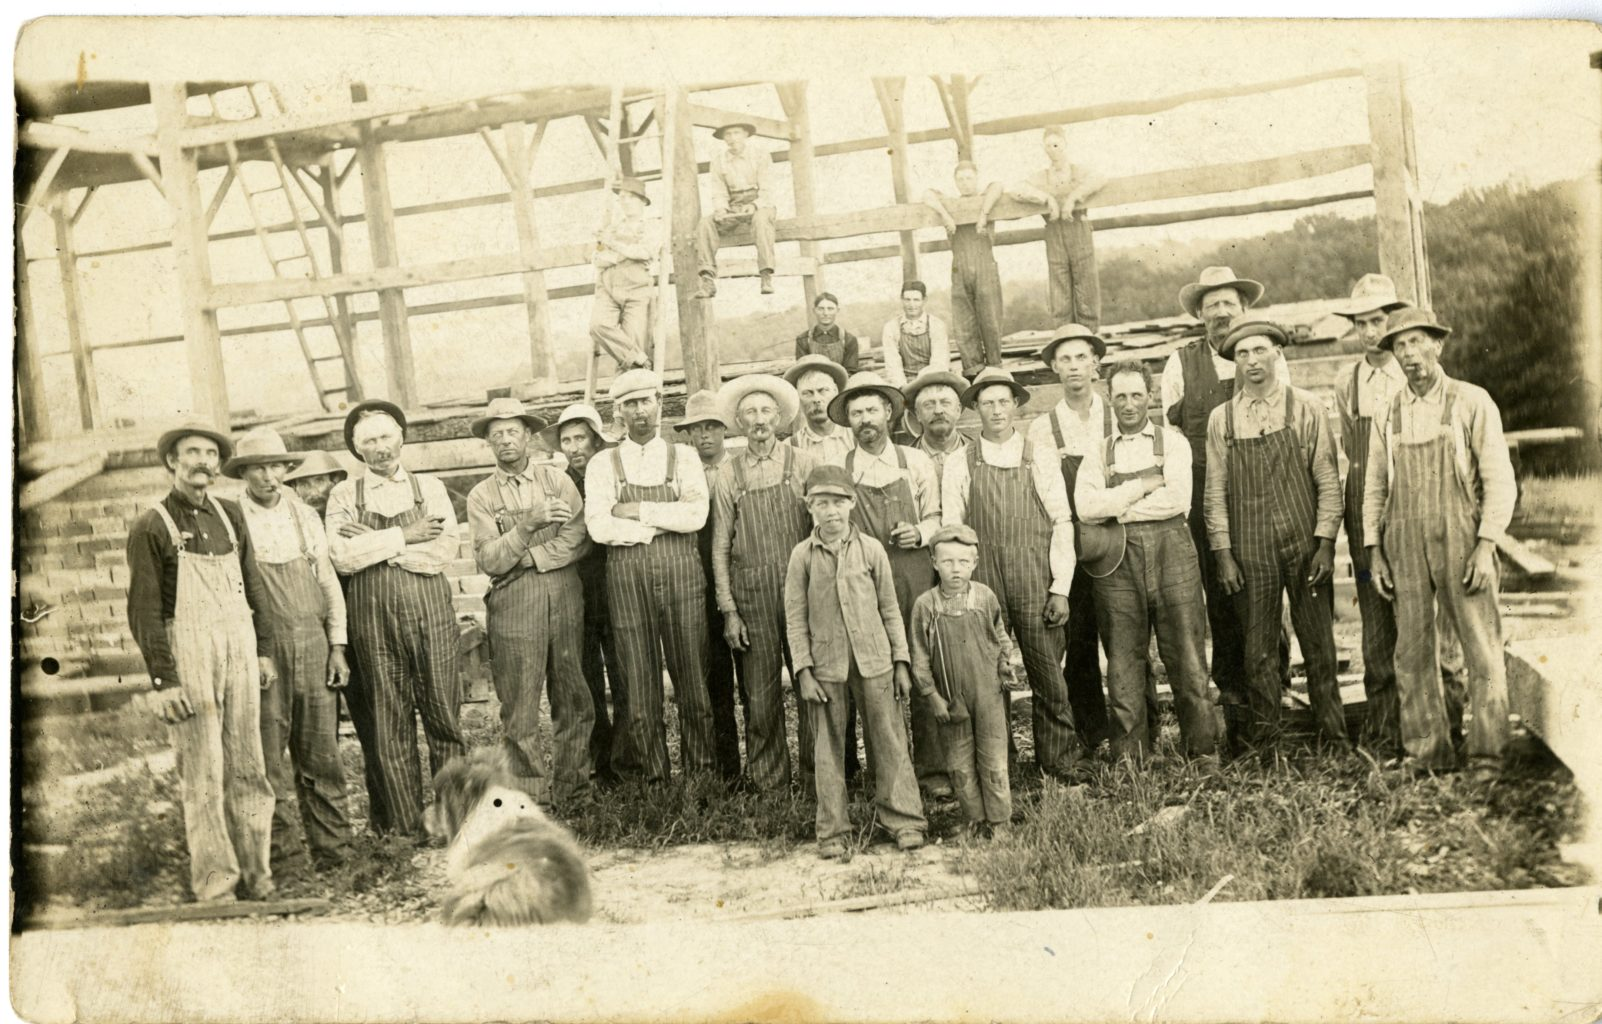 Group of men and boys gather for barn raising.